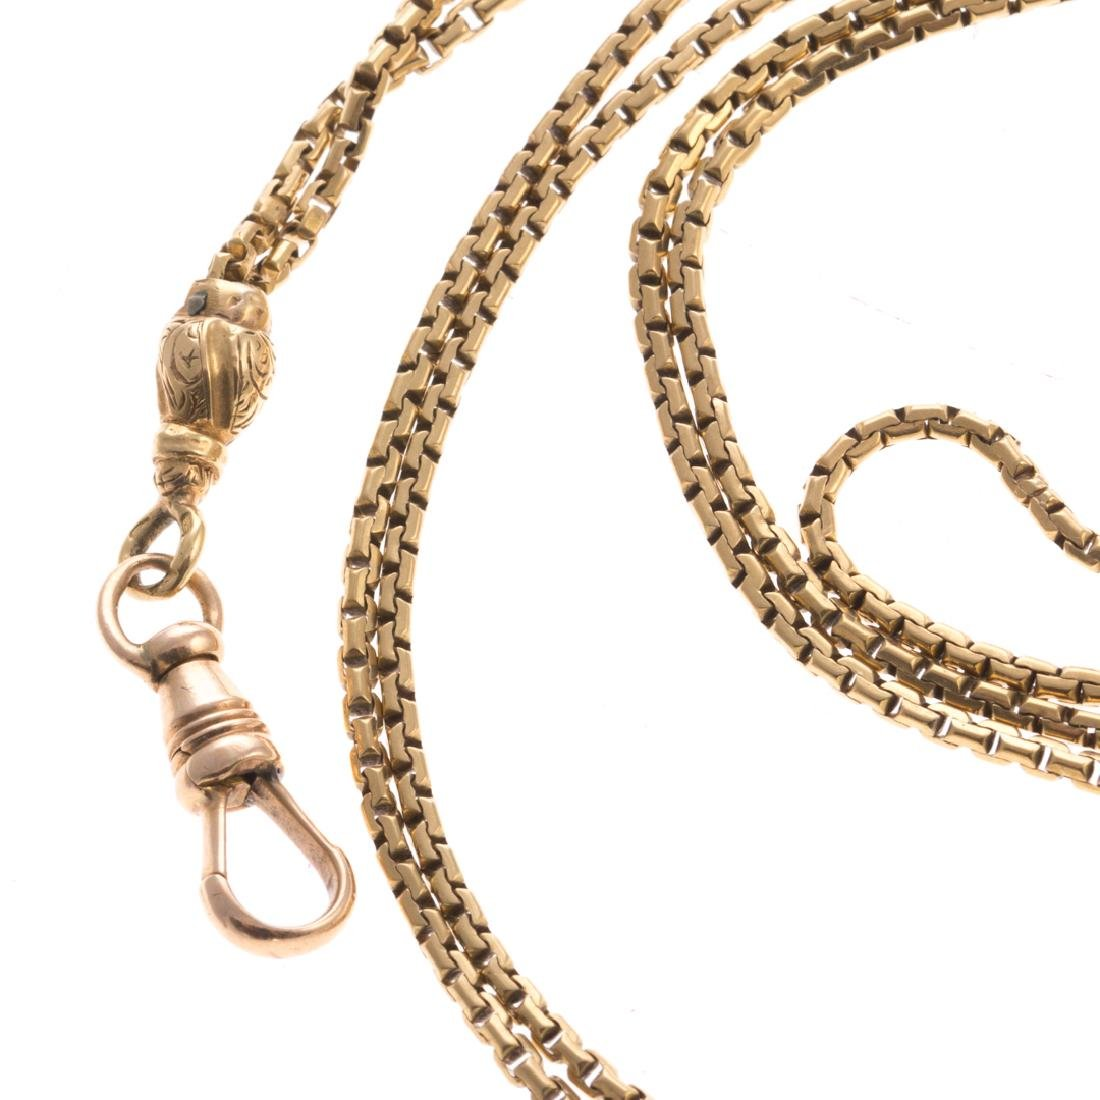 A Long Chain Link Necklace in 14K Yellow Gold - 2